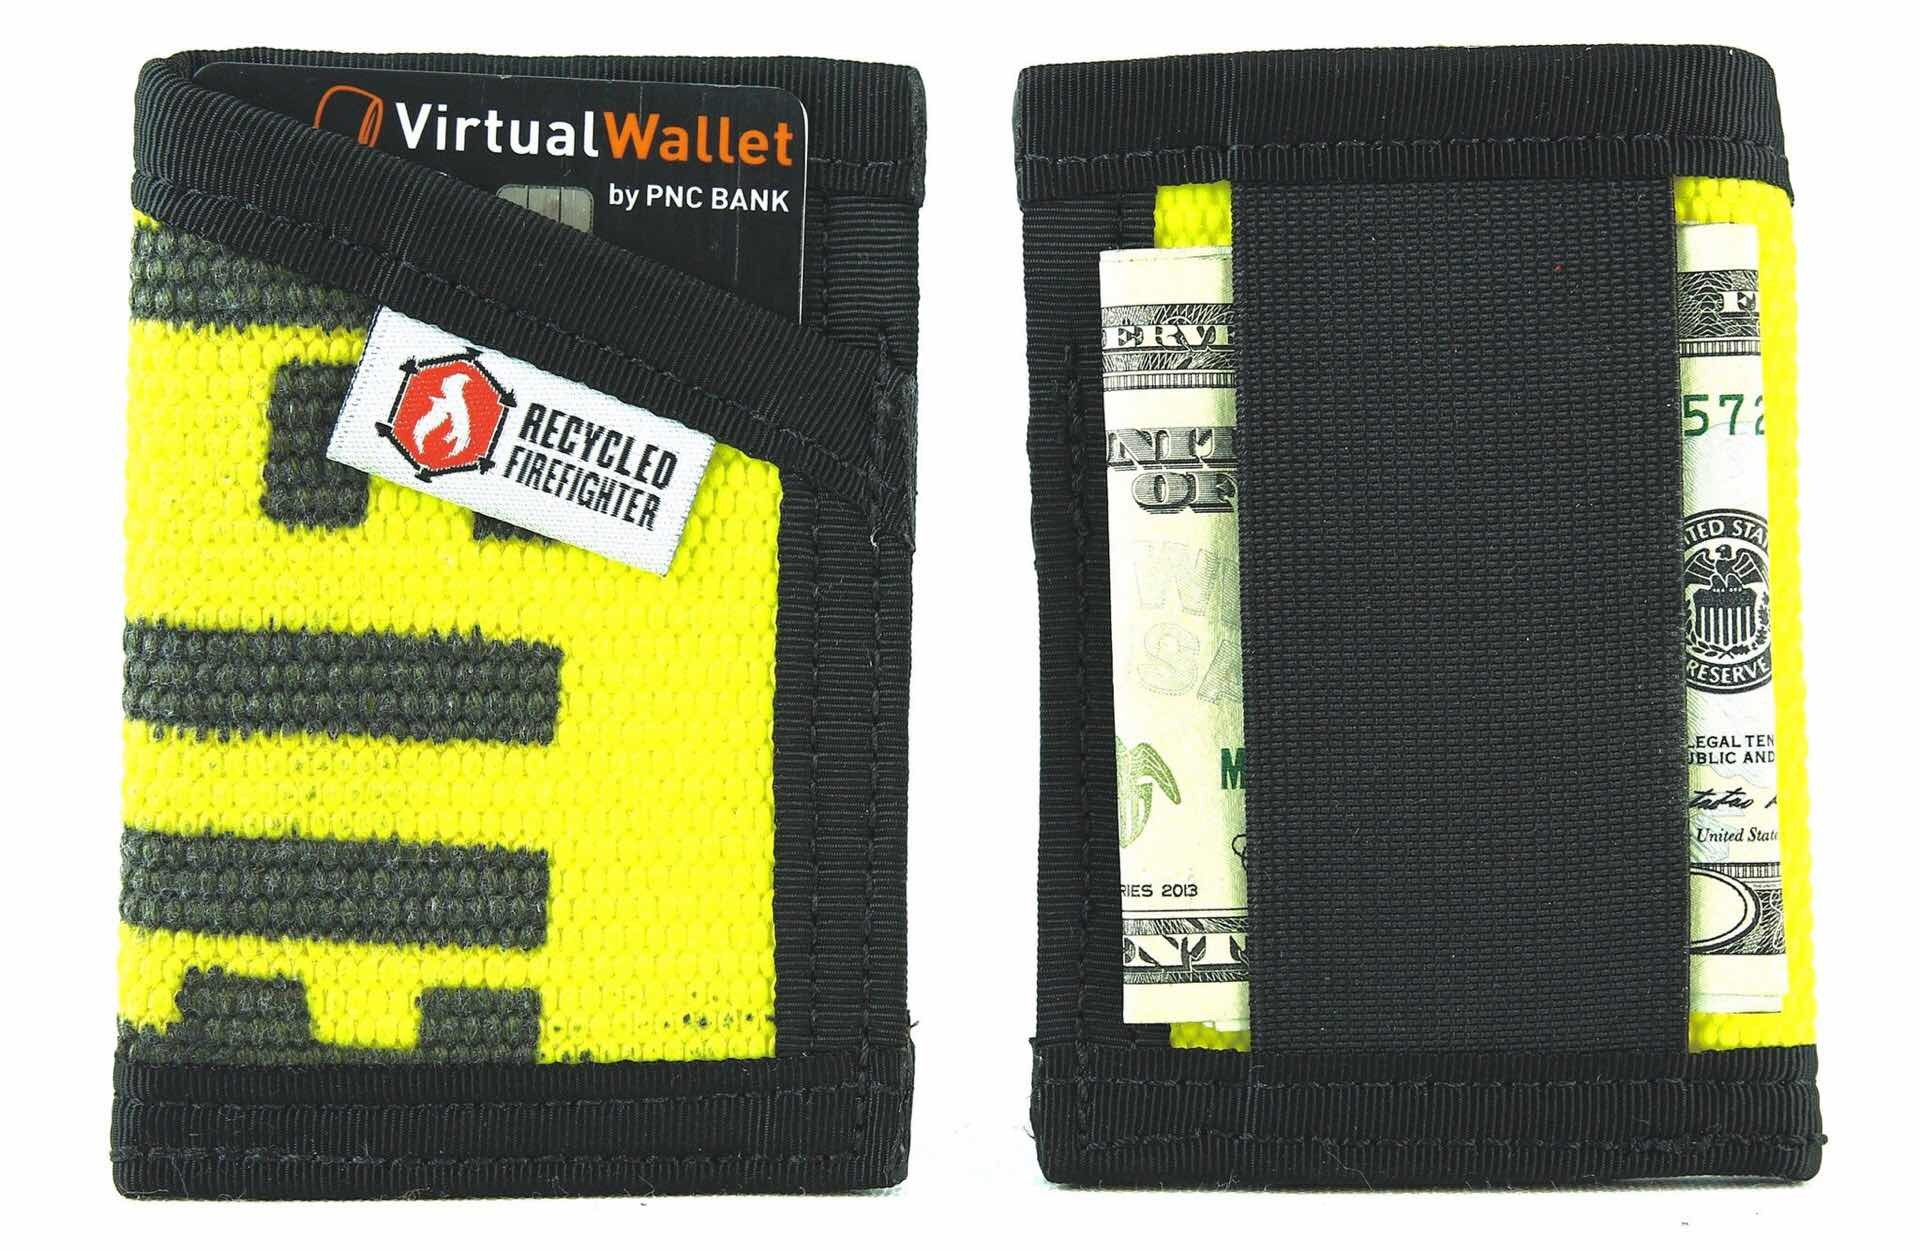 Recycled Firefighter Sergeant wallet. ($19–$29)